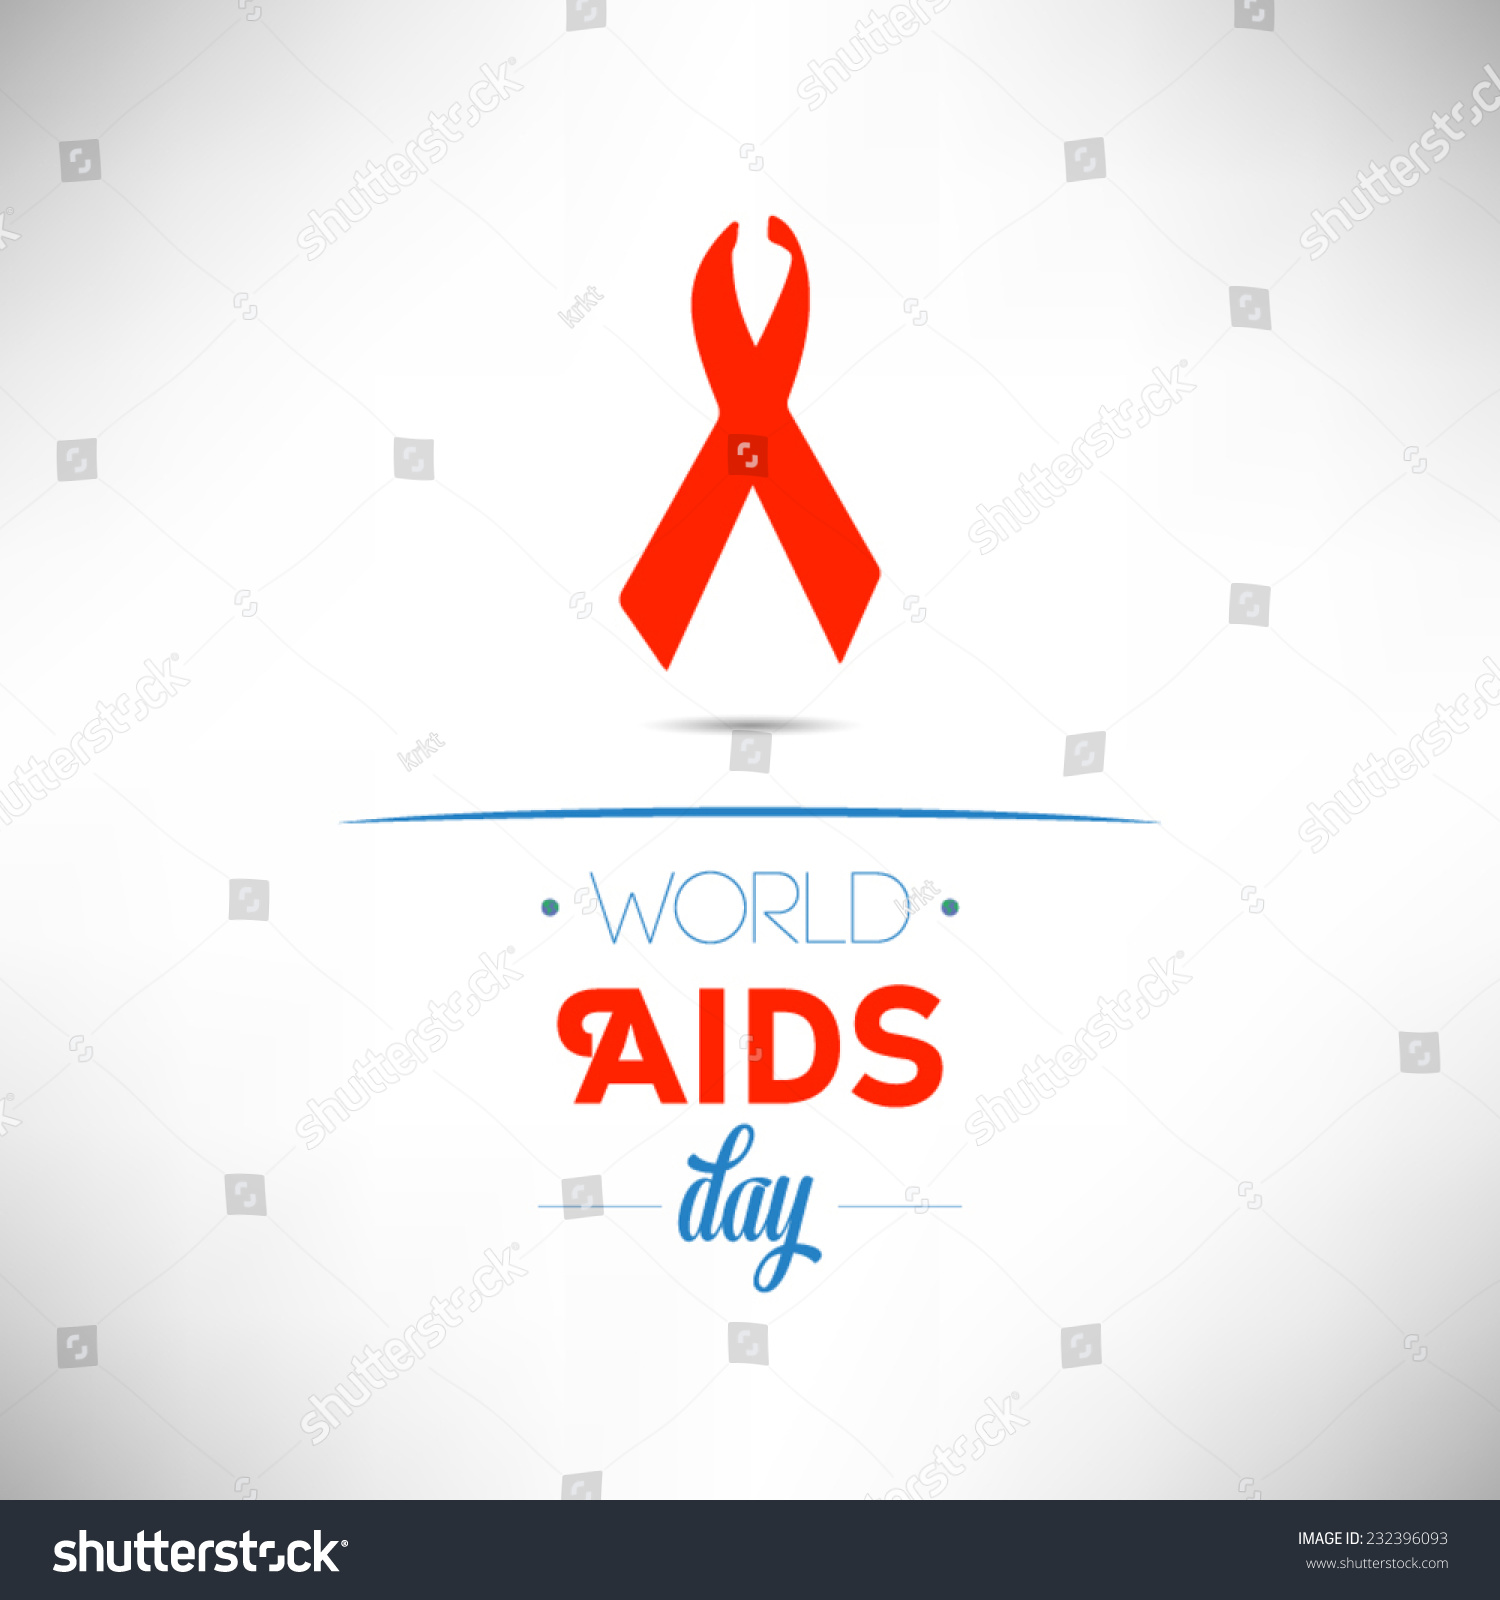 world aids day backgrounds - photo #22